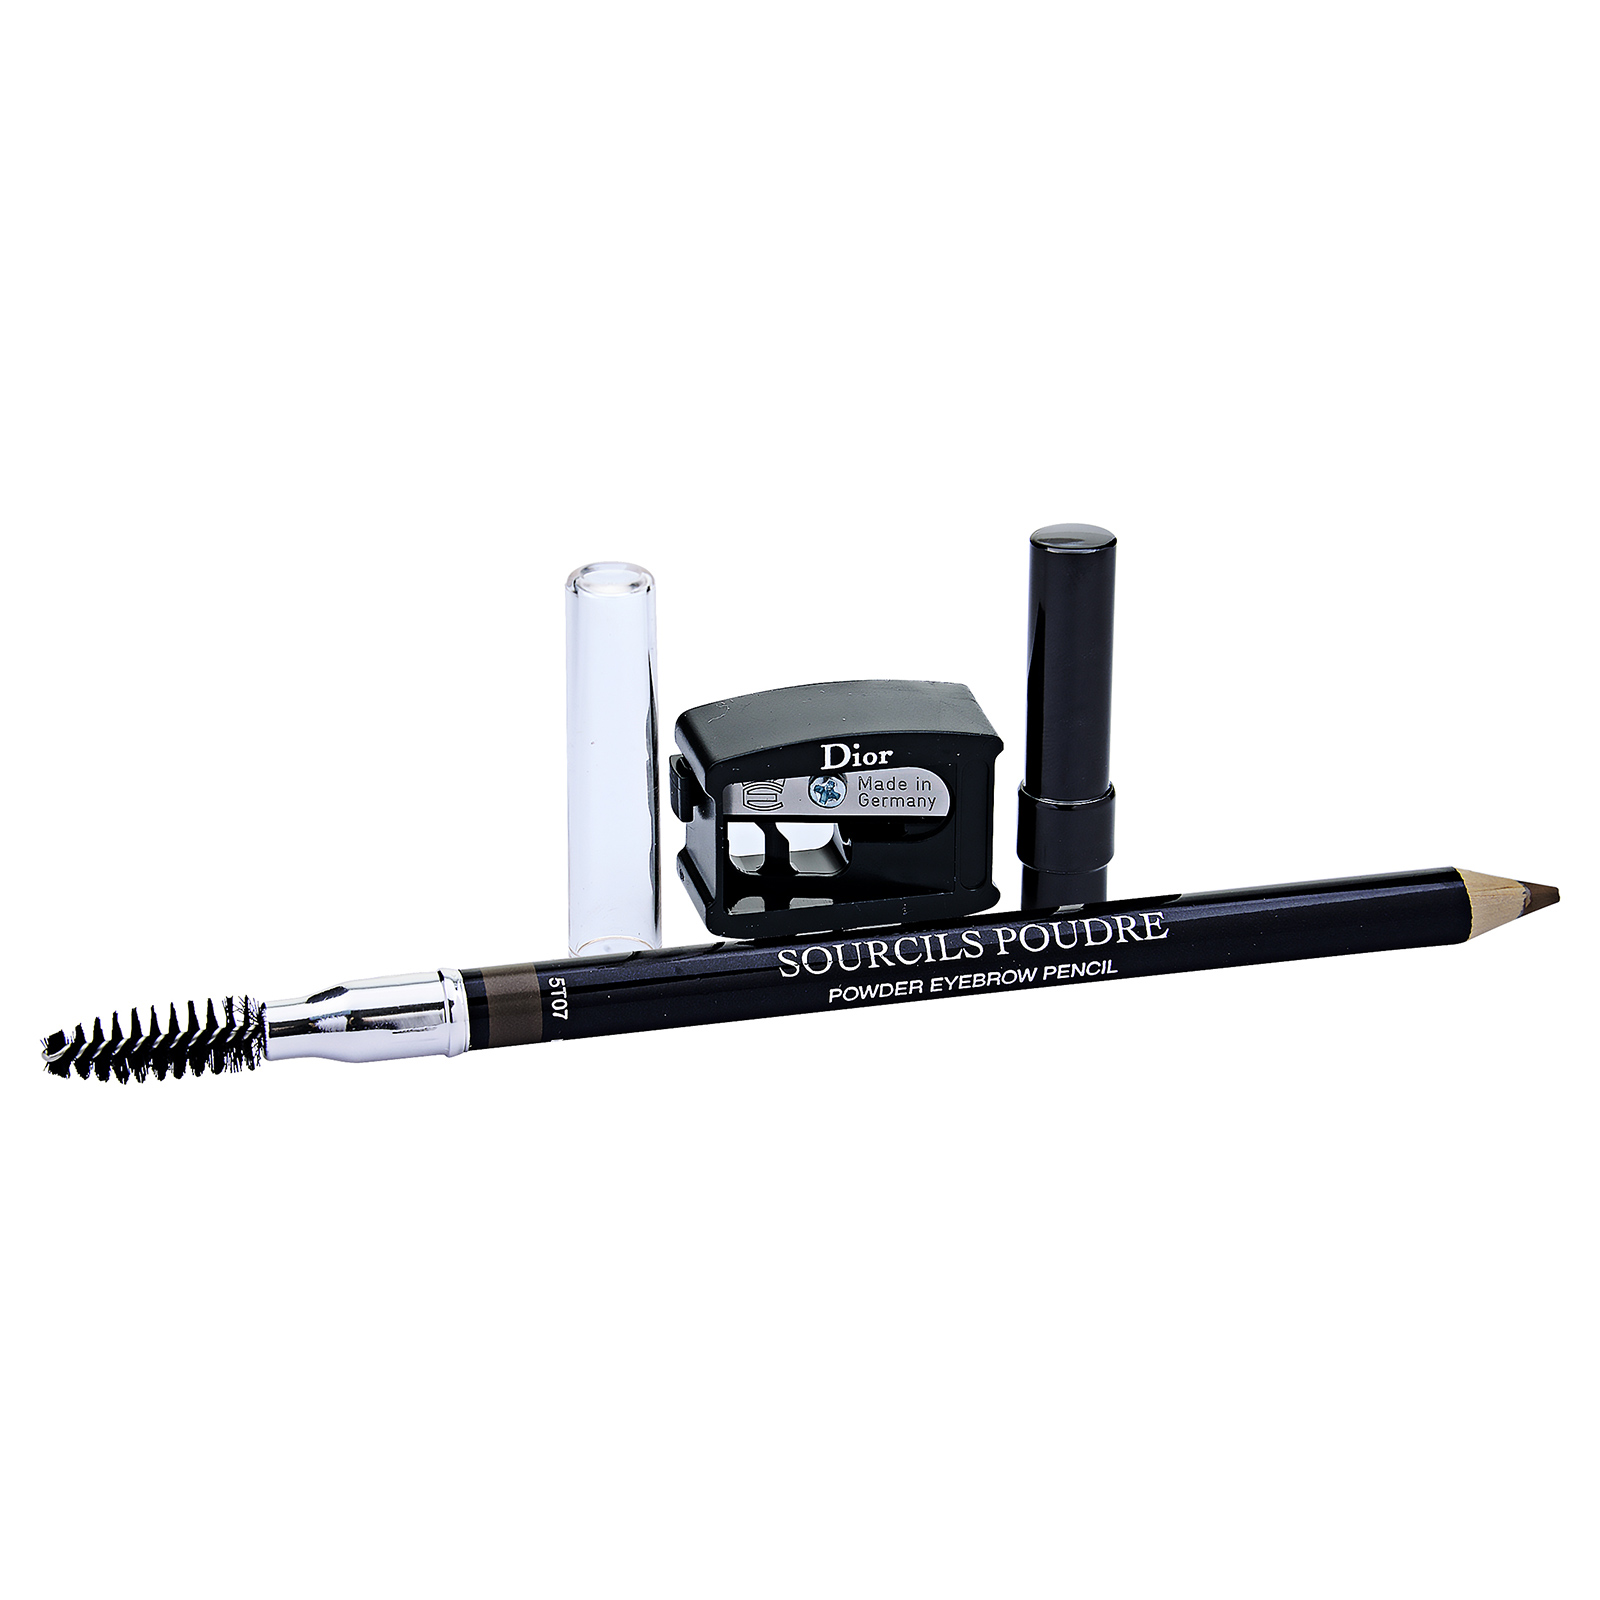 Christian Dior  Sourcils Poudre Powder Eyebrow Pencil (With Brush And Sharpener) 593 Brun Brown, 0.04oz, 1.2g